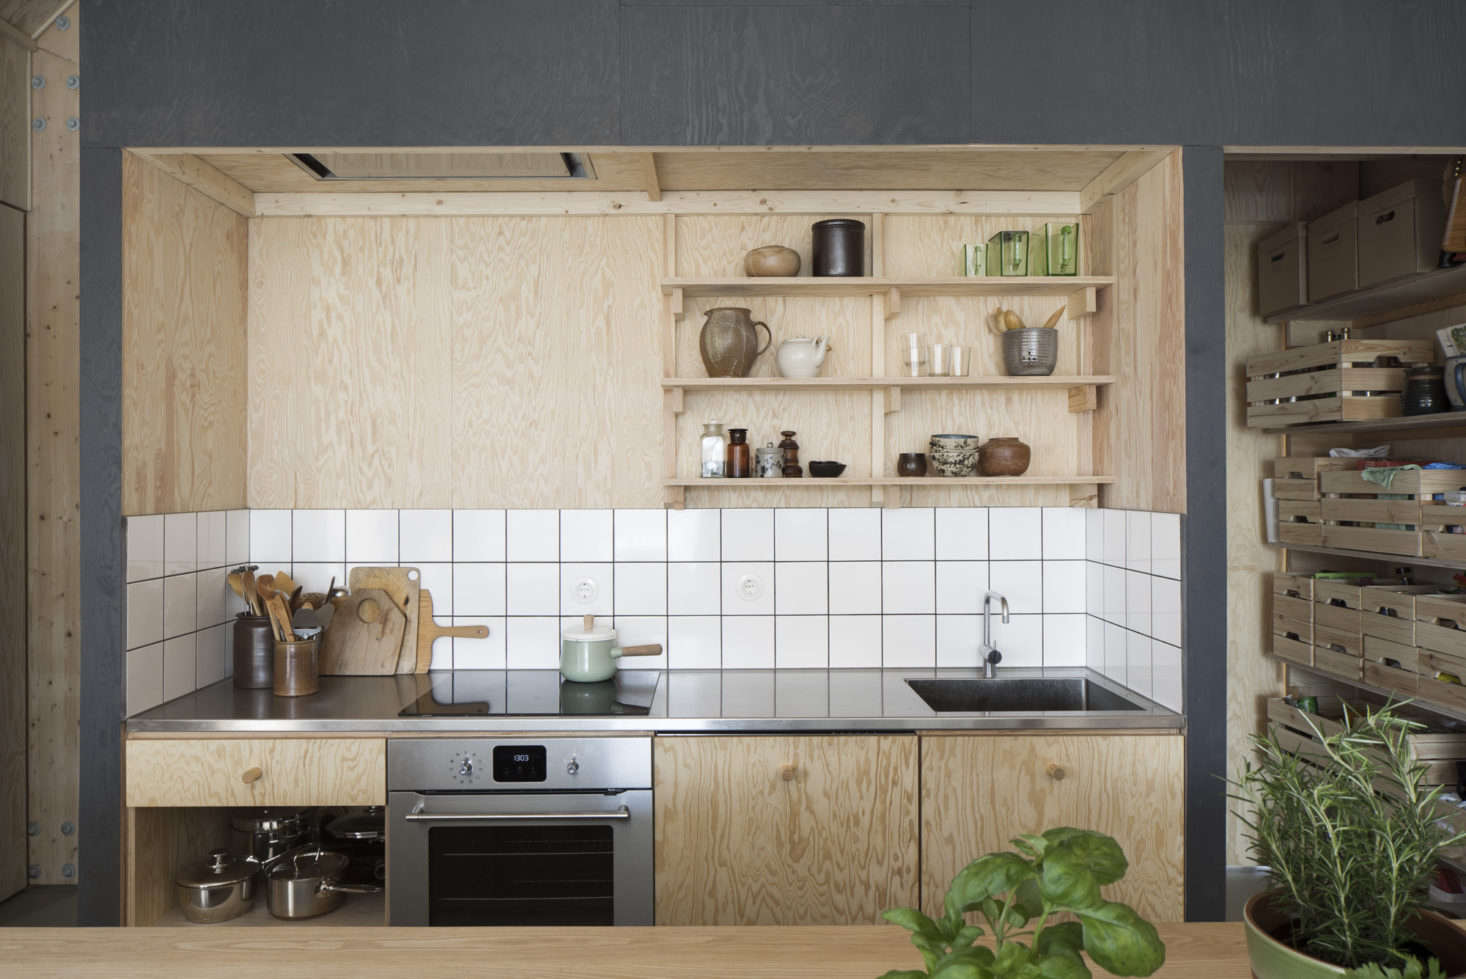 Small Enclosed Kitchen Design 14 Tricks For Maximizing Space In A Tiny Kitchen Urban Edition